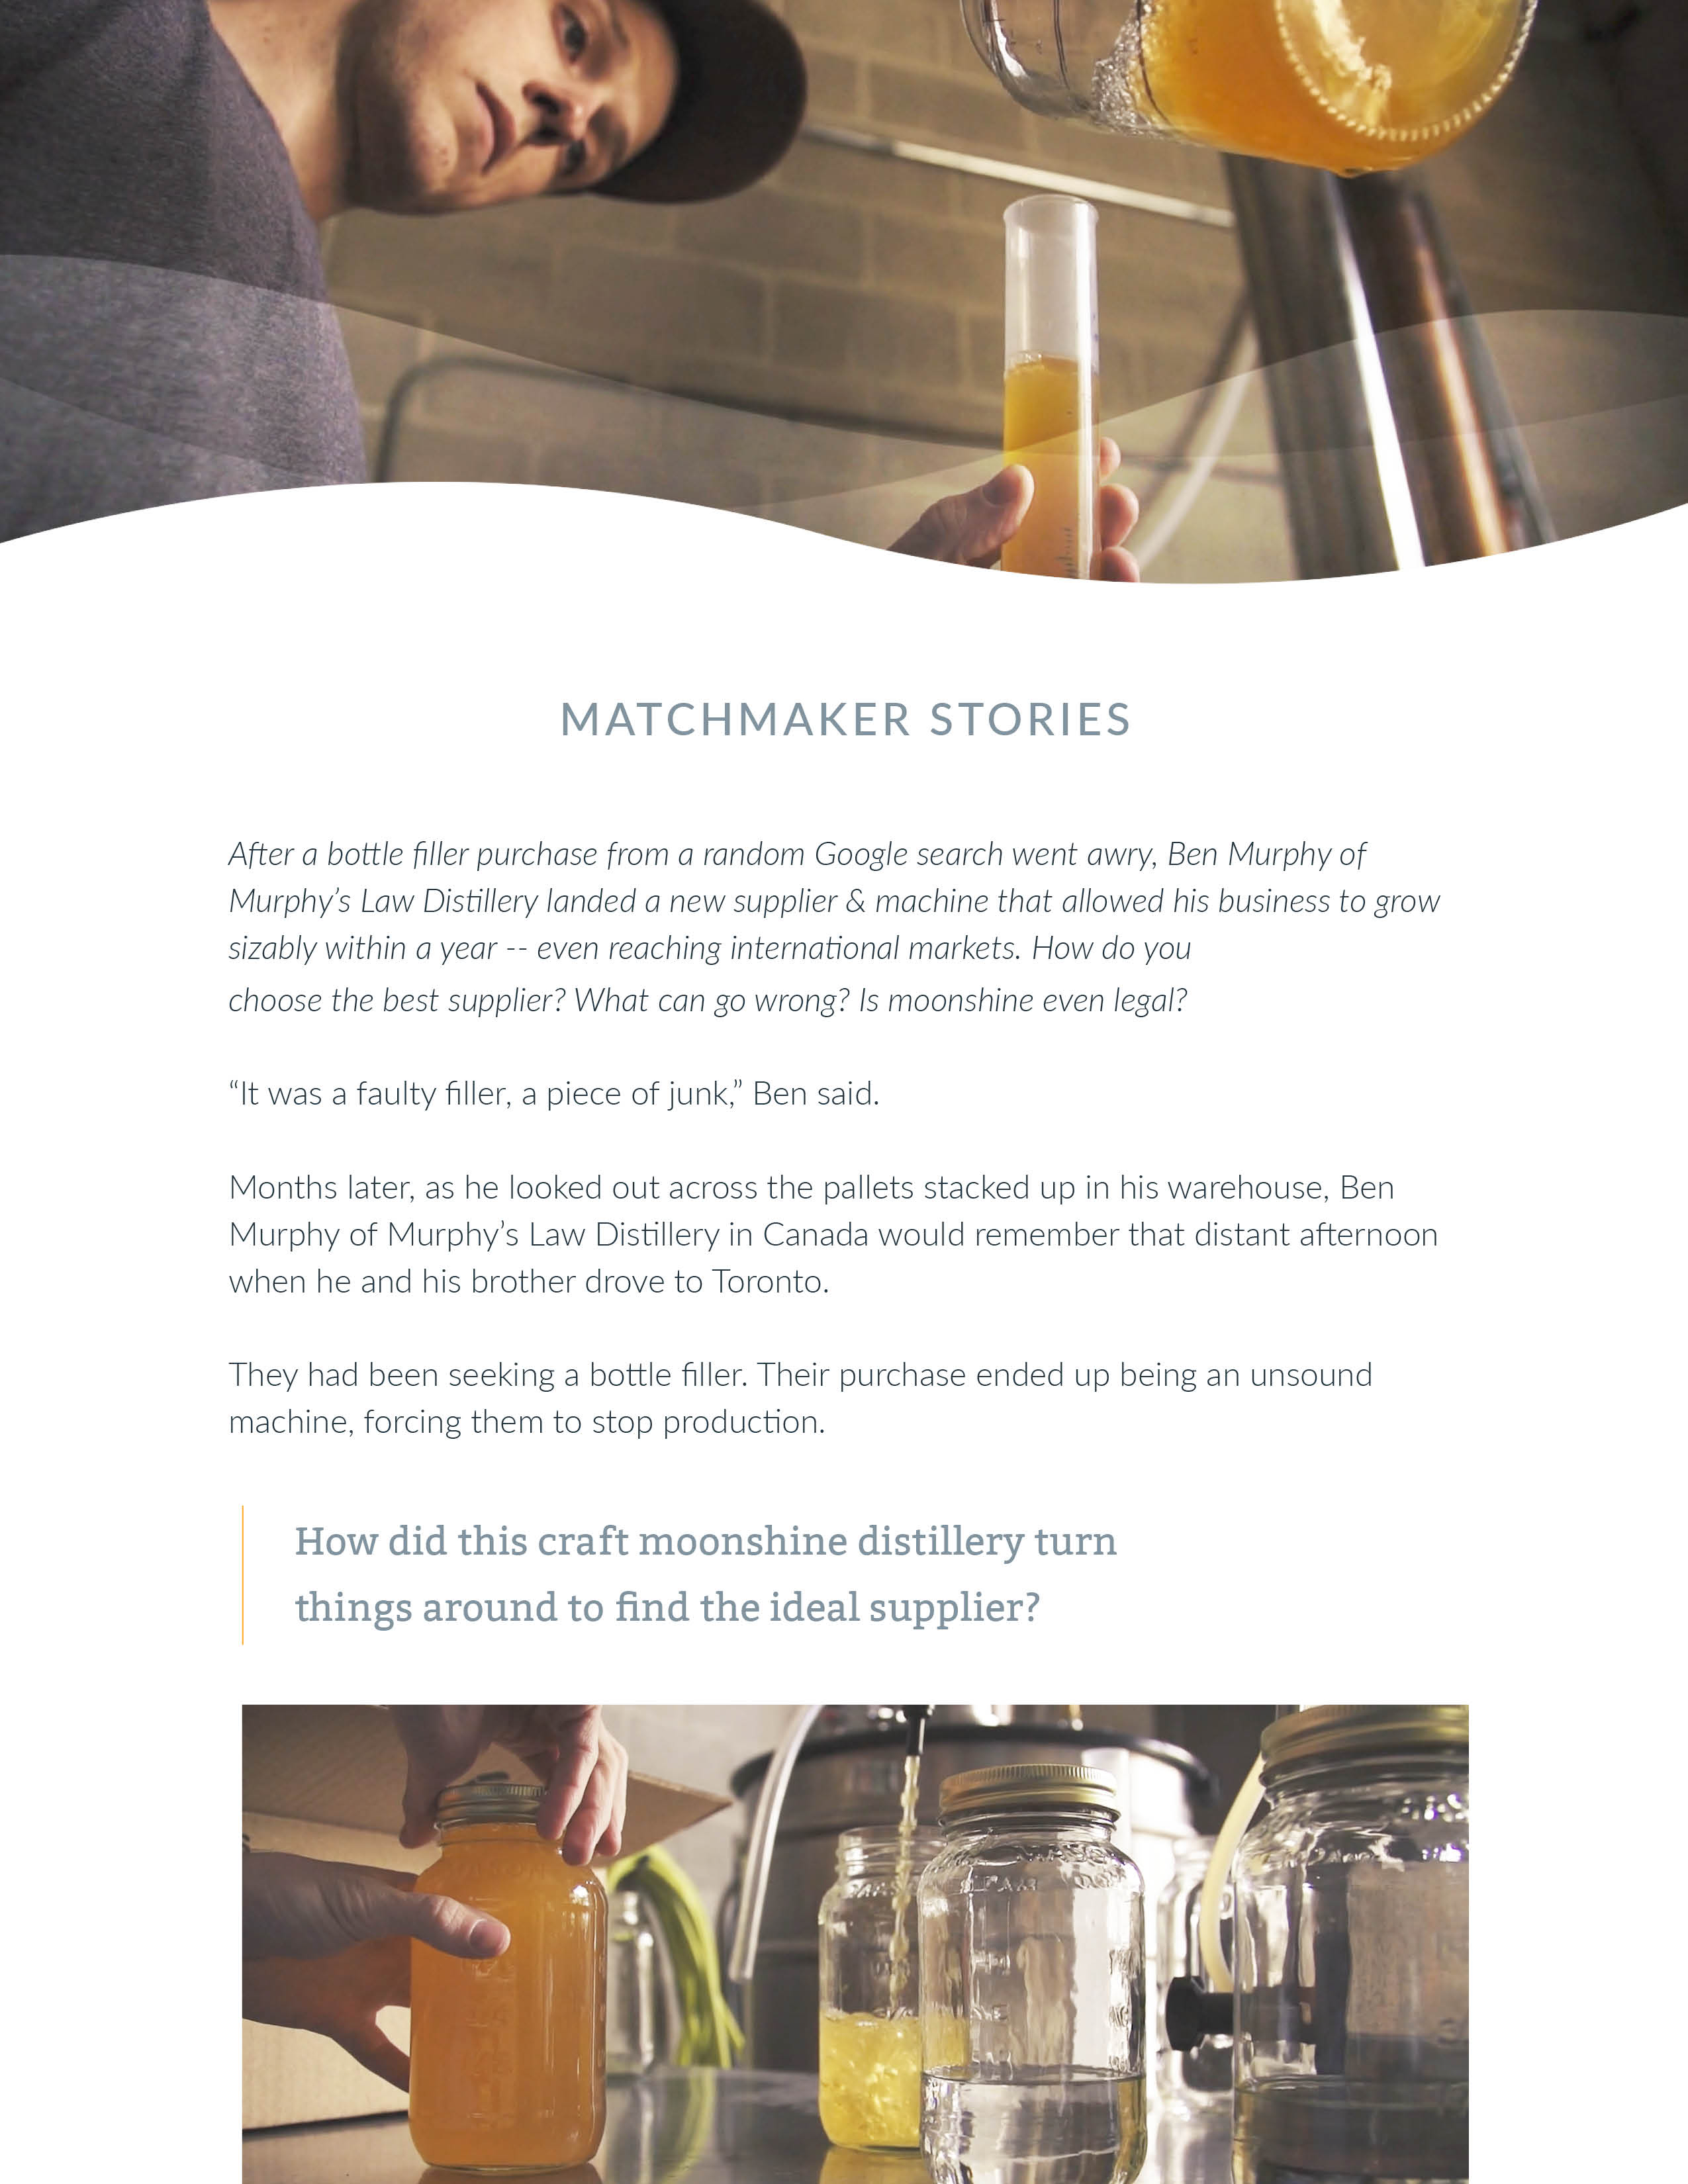 Ben Murphy of Murphy's Law Distillery seeking bottle filler